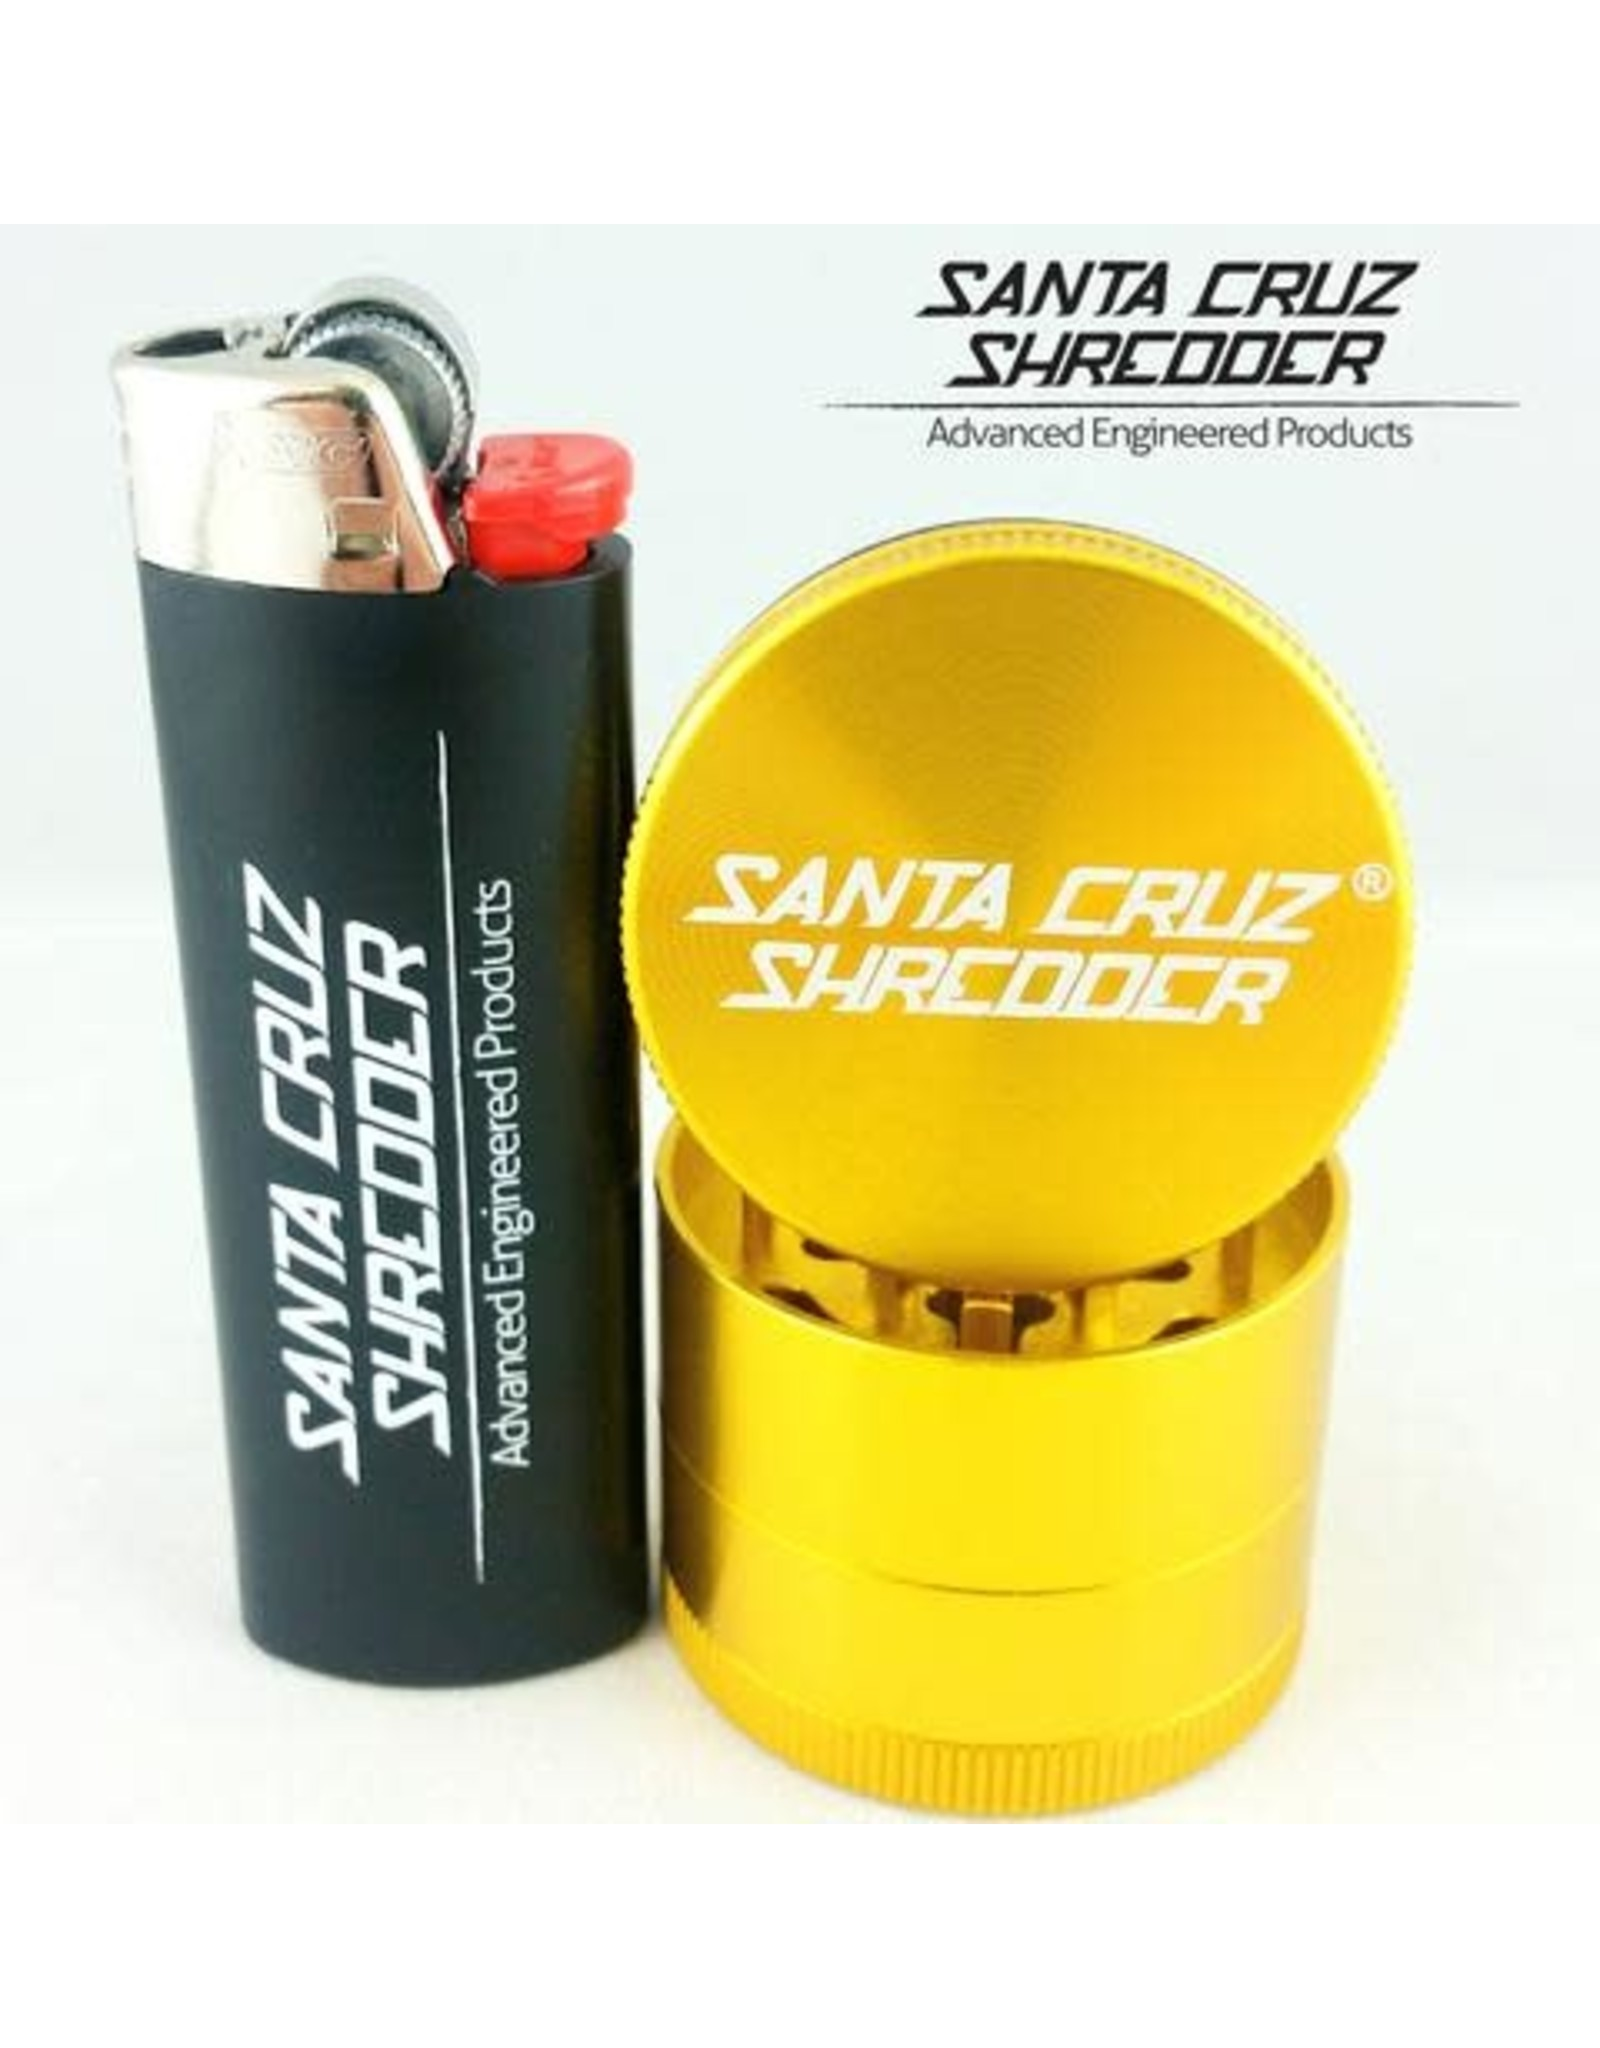 Santa Cruz Shredder Santa Cruz Shredder Small 4Pc Gold